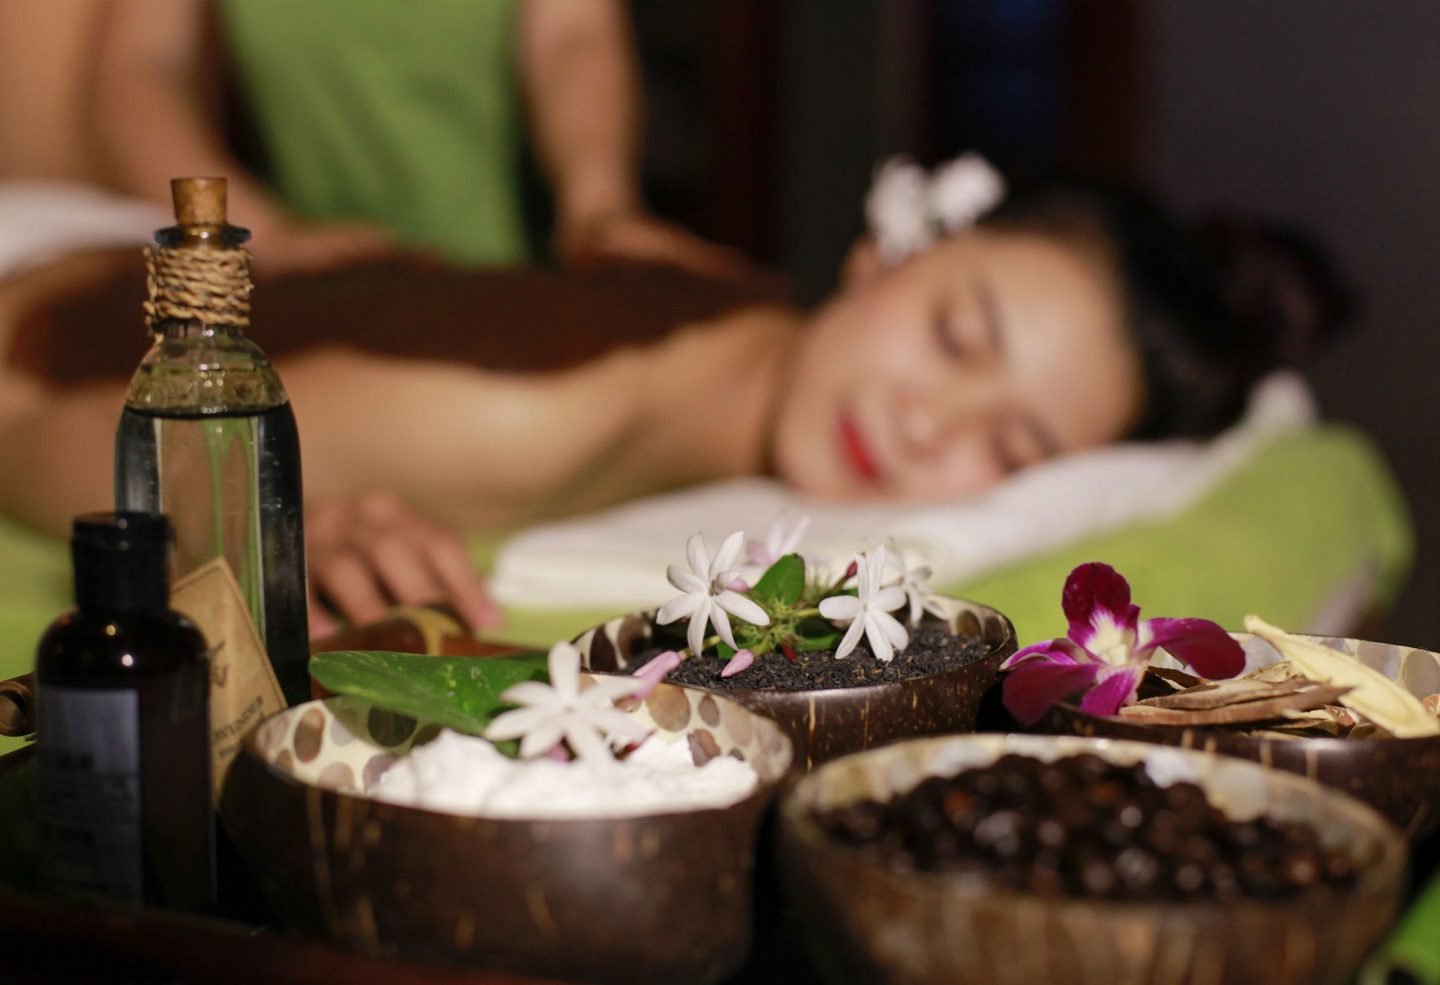 Woman receiving massage in background while essential oils and aromatics are shown in foreground.